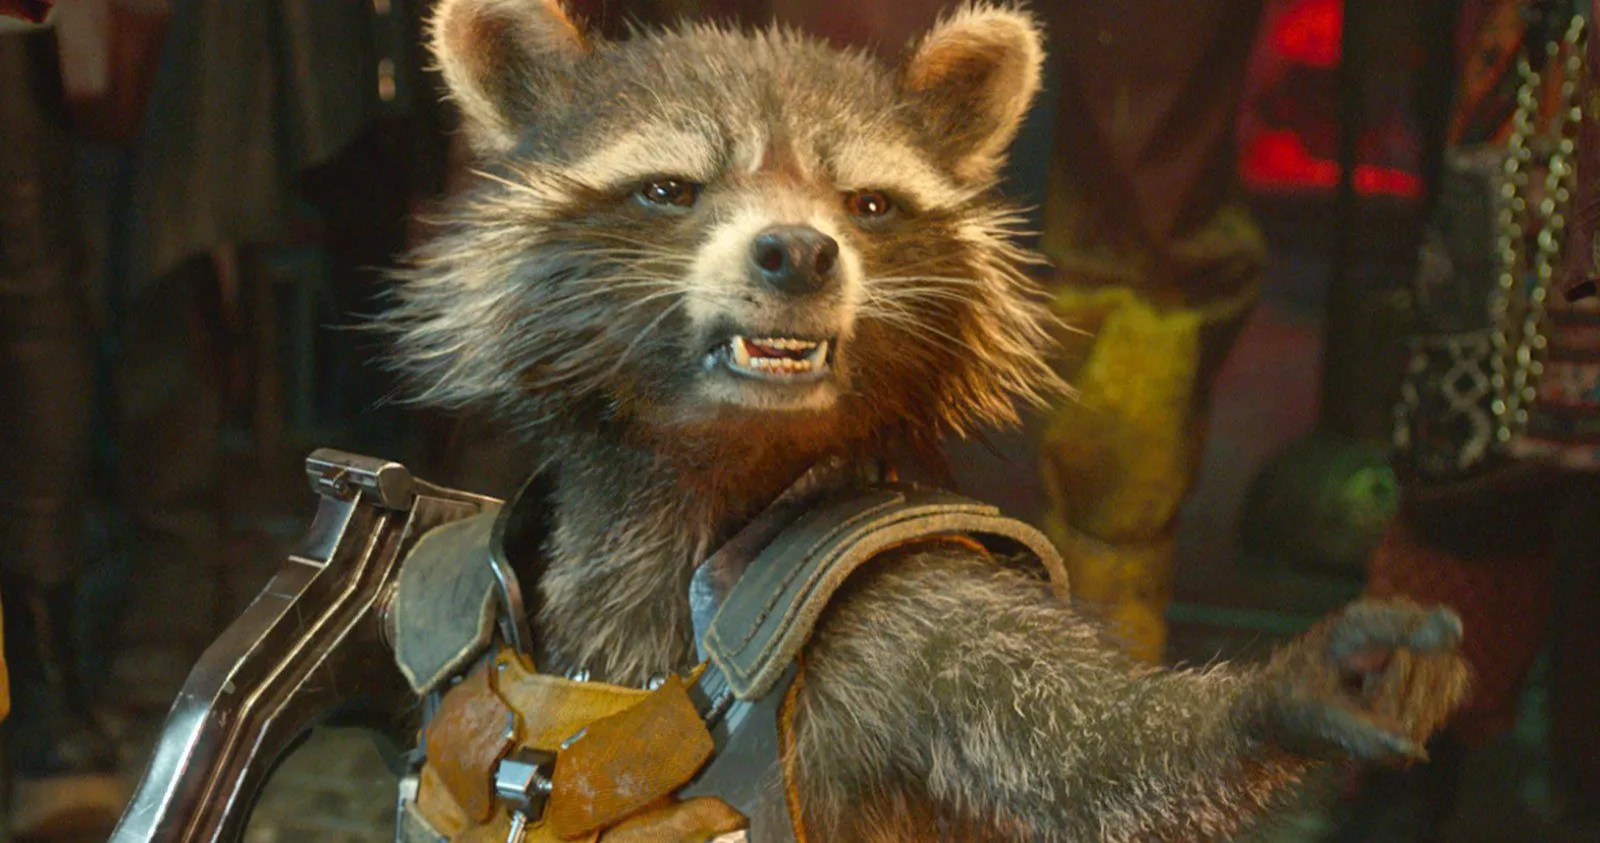 How Rocket Raccoon Discovered the Possibility of God According to James Gunn